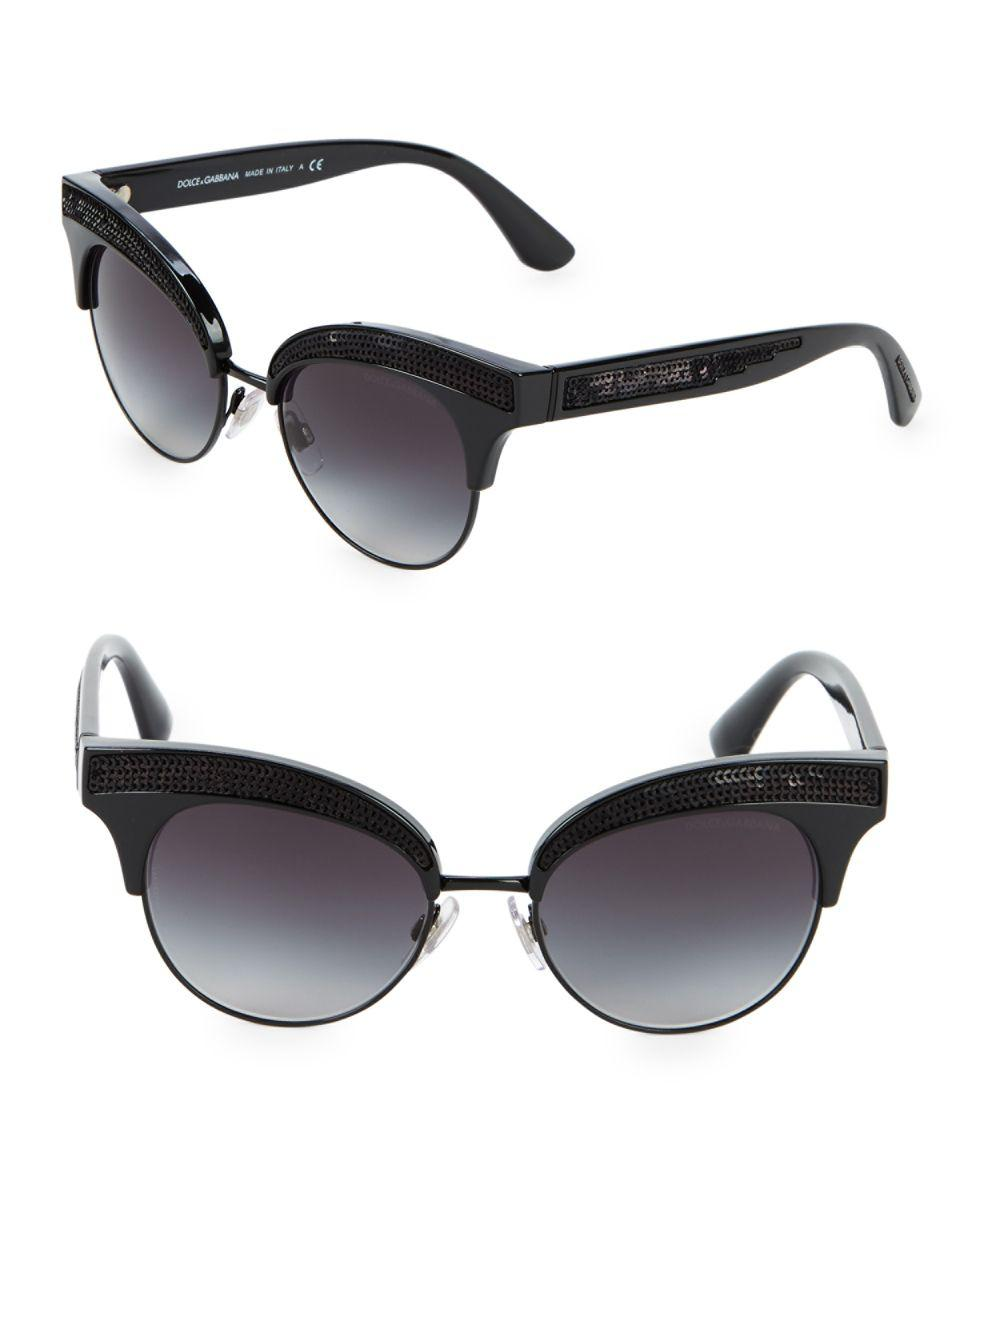 0a5713cfdb3 Lyst - Dolce   Gabbana 50mm Sequin Trim Cateye Sunglasses in Black